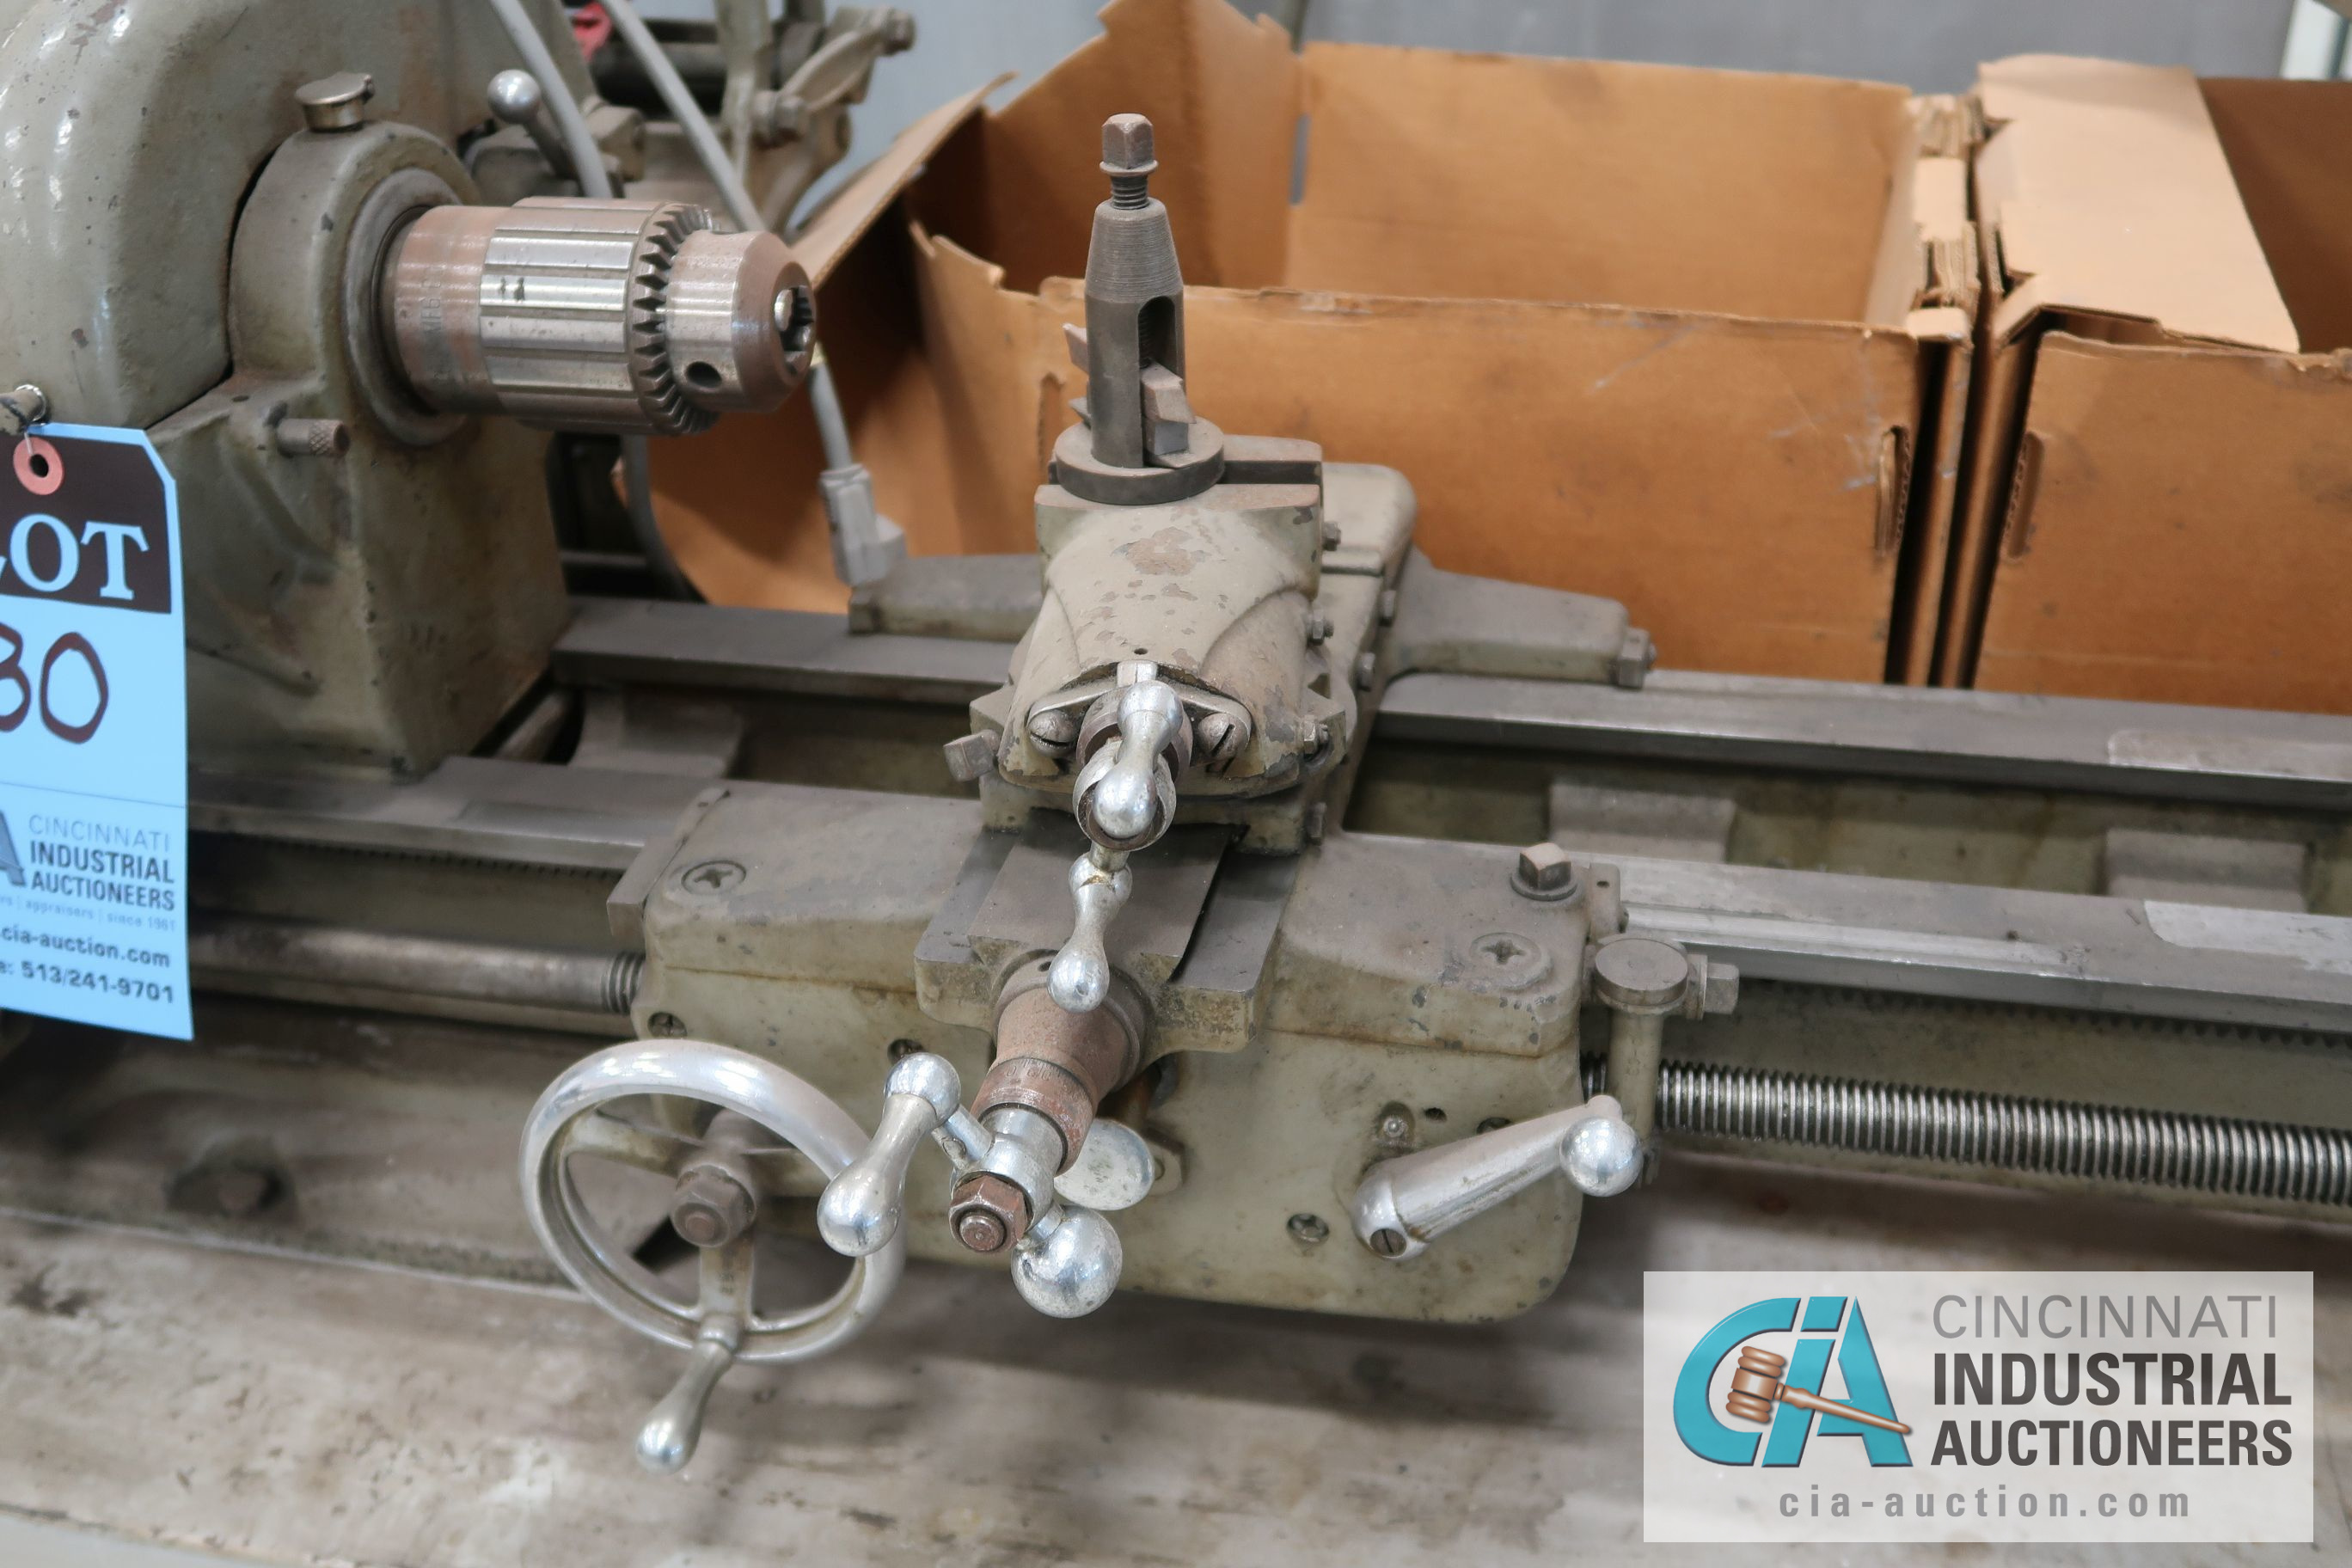 ATLAS MODEL TH48 BENCH TOP LATHE; S/N 058298, WITH WORK BENCH AND MACHINE ACCESSORIES, 110 VOLT - Image 3 of 8